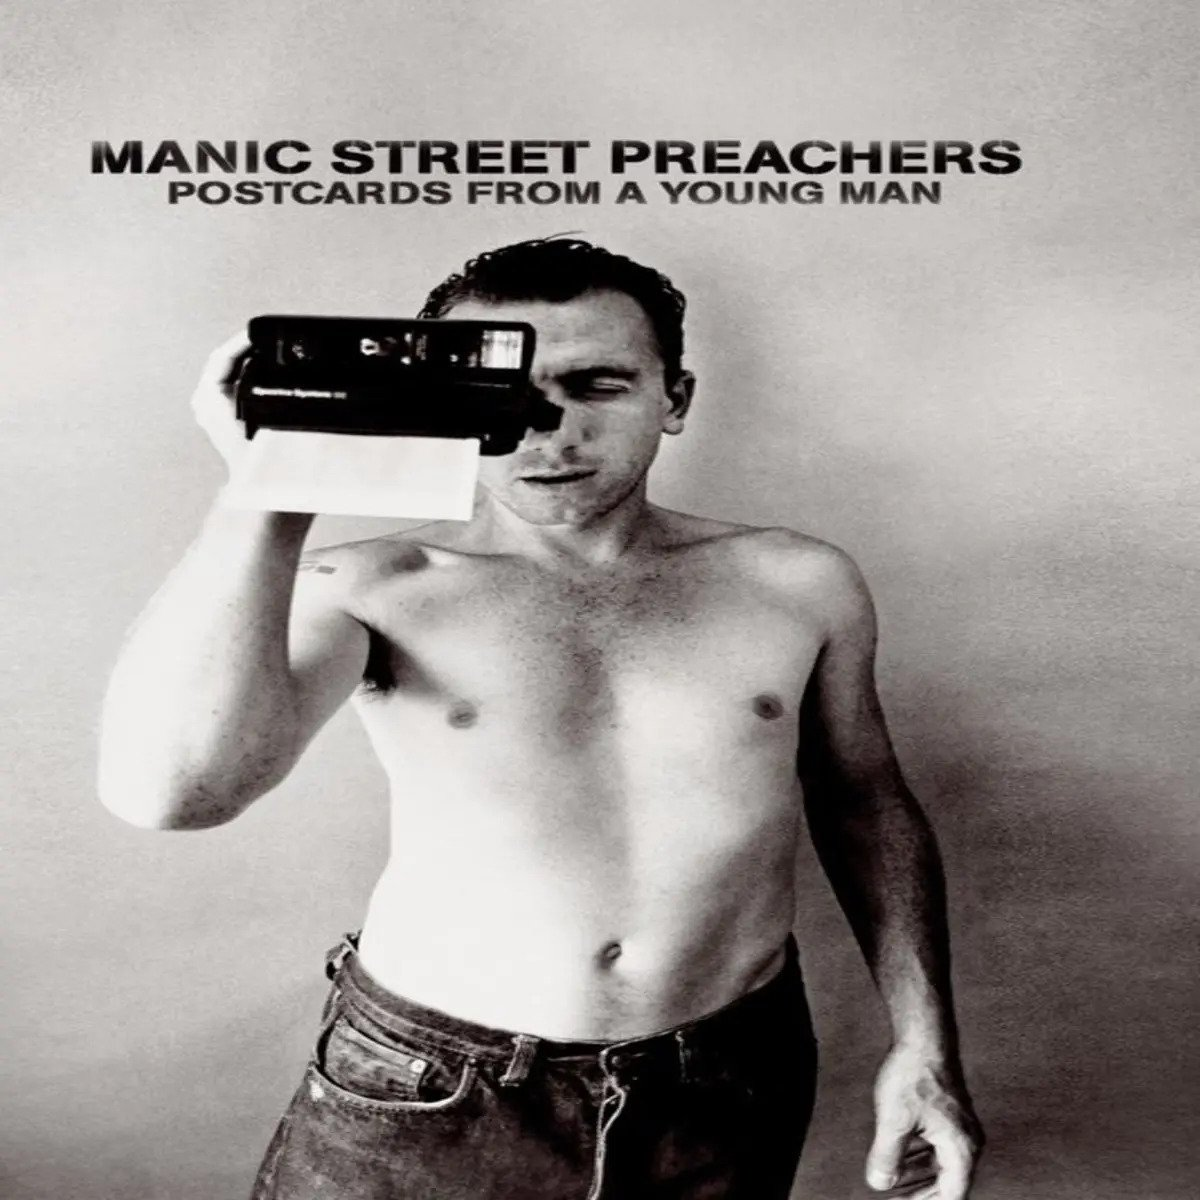 Manic Street Preachers, Postcards from a Young Man